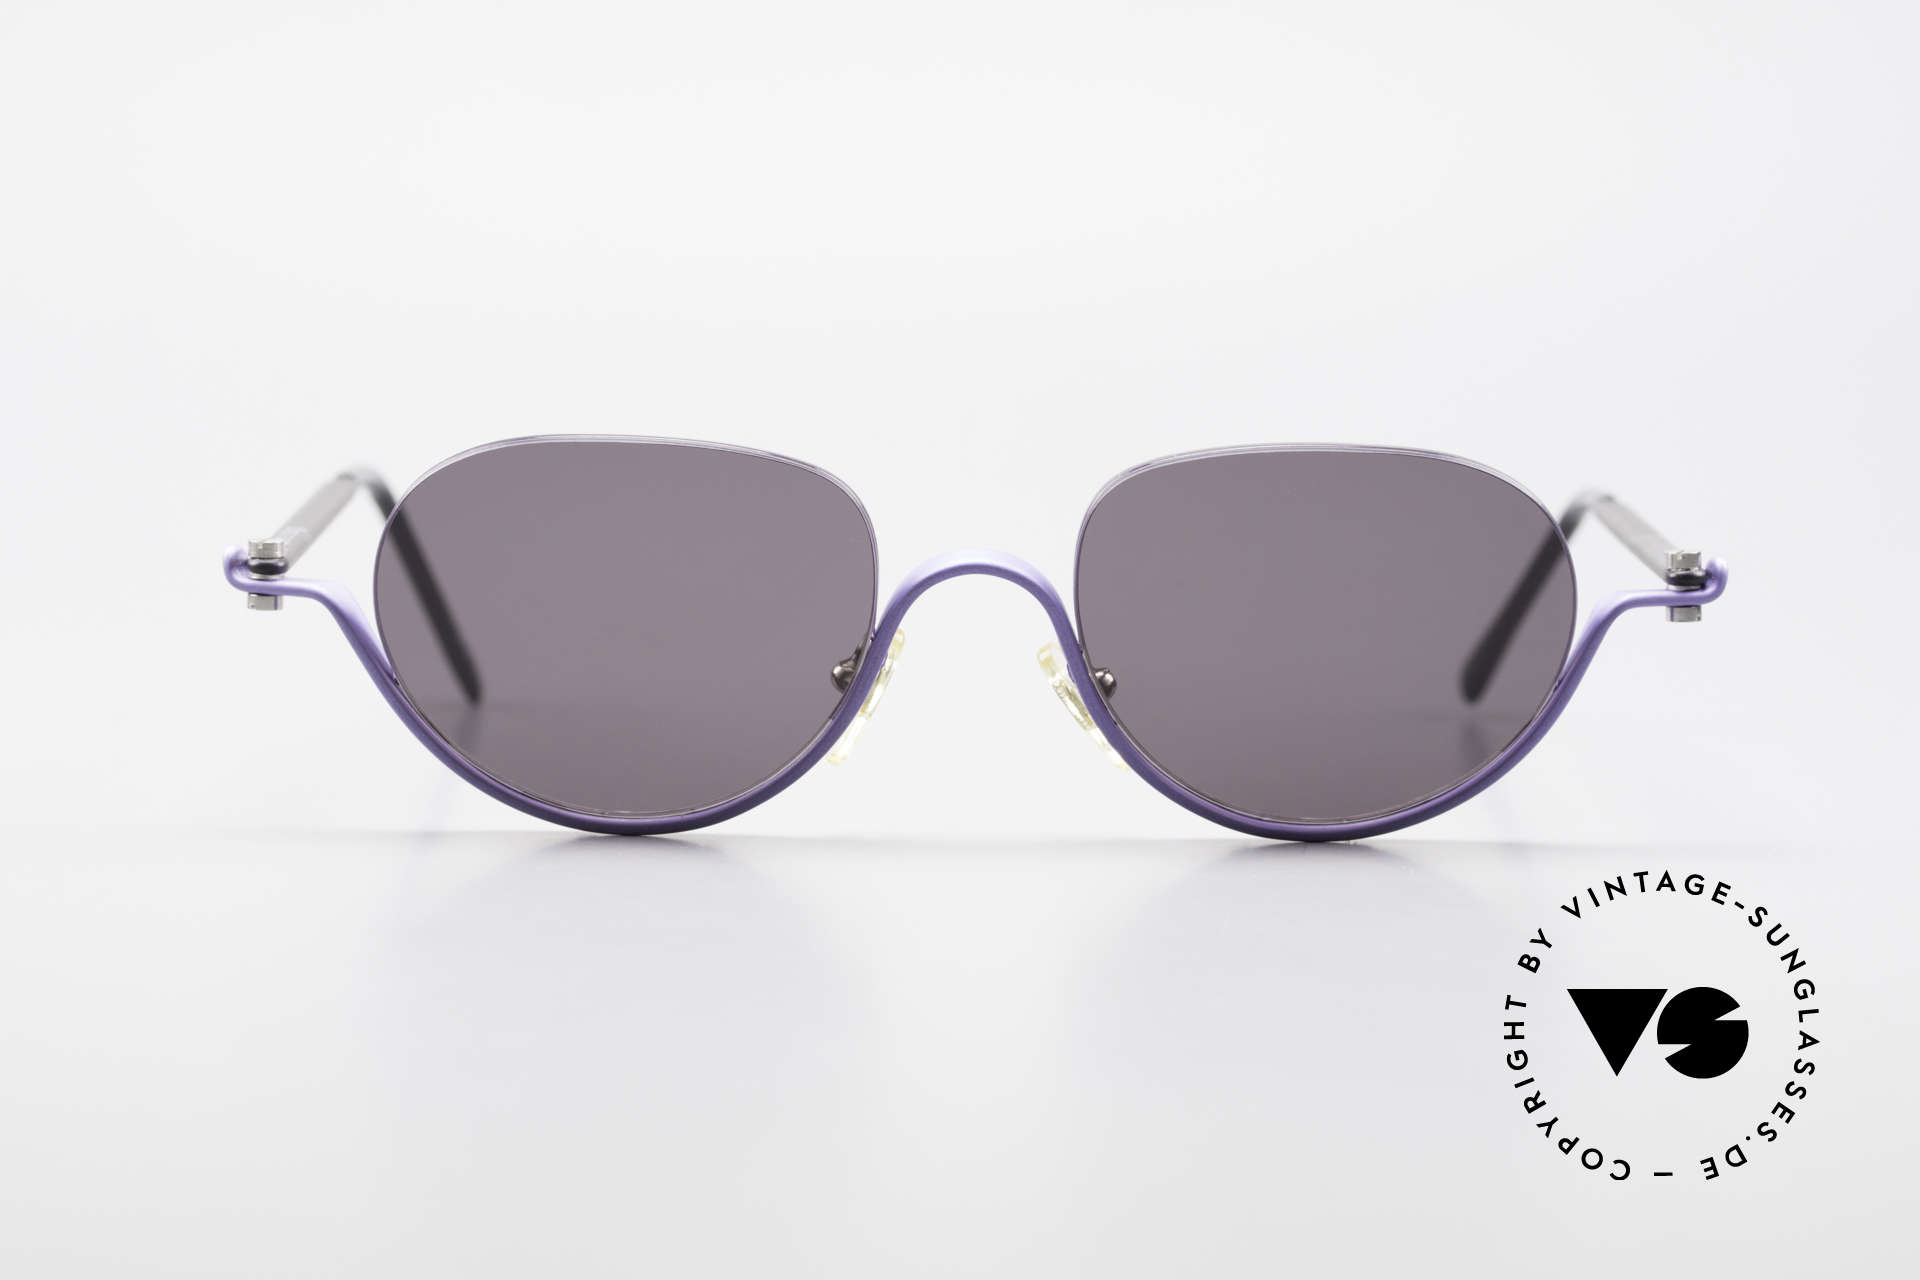 ProDesign No8 Gail Spence Design Eyeglasses, true vintage aluminium frame - Gail Spence Design, Made for Women